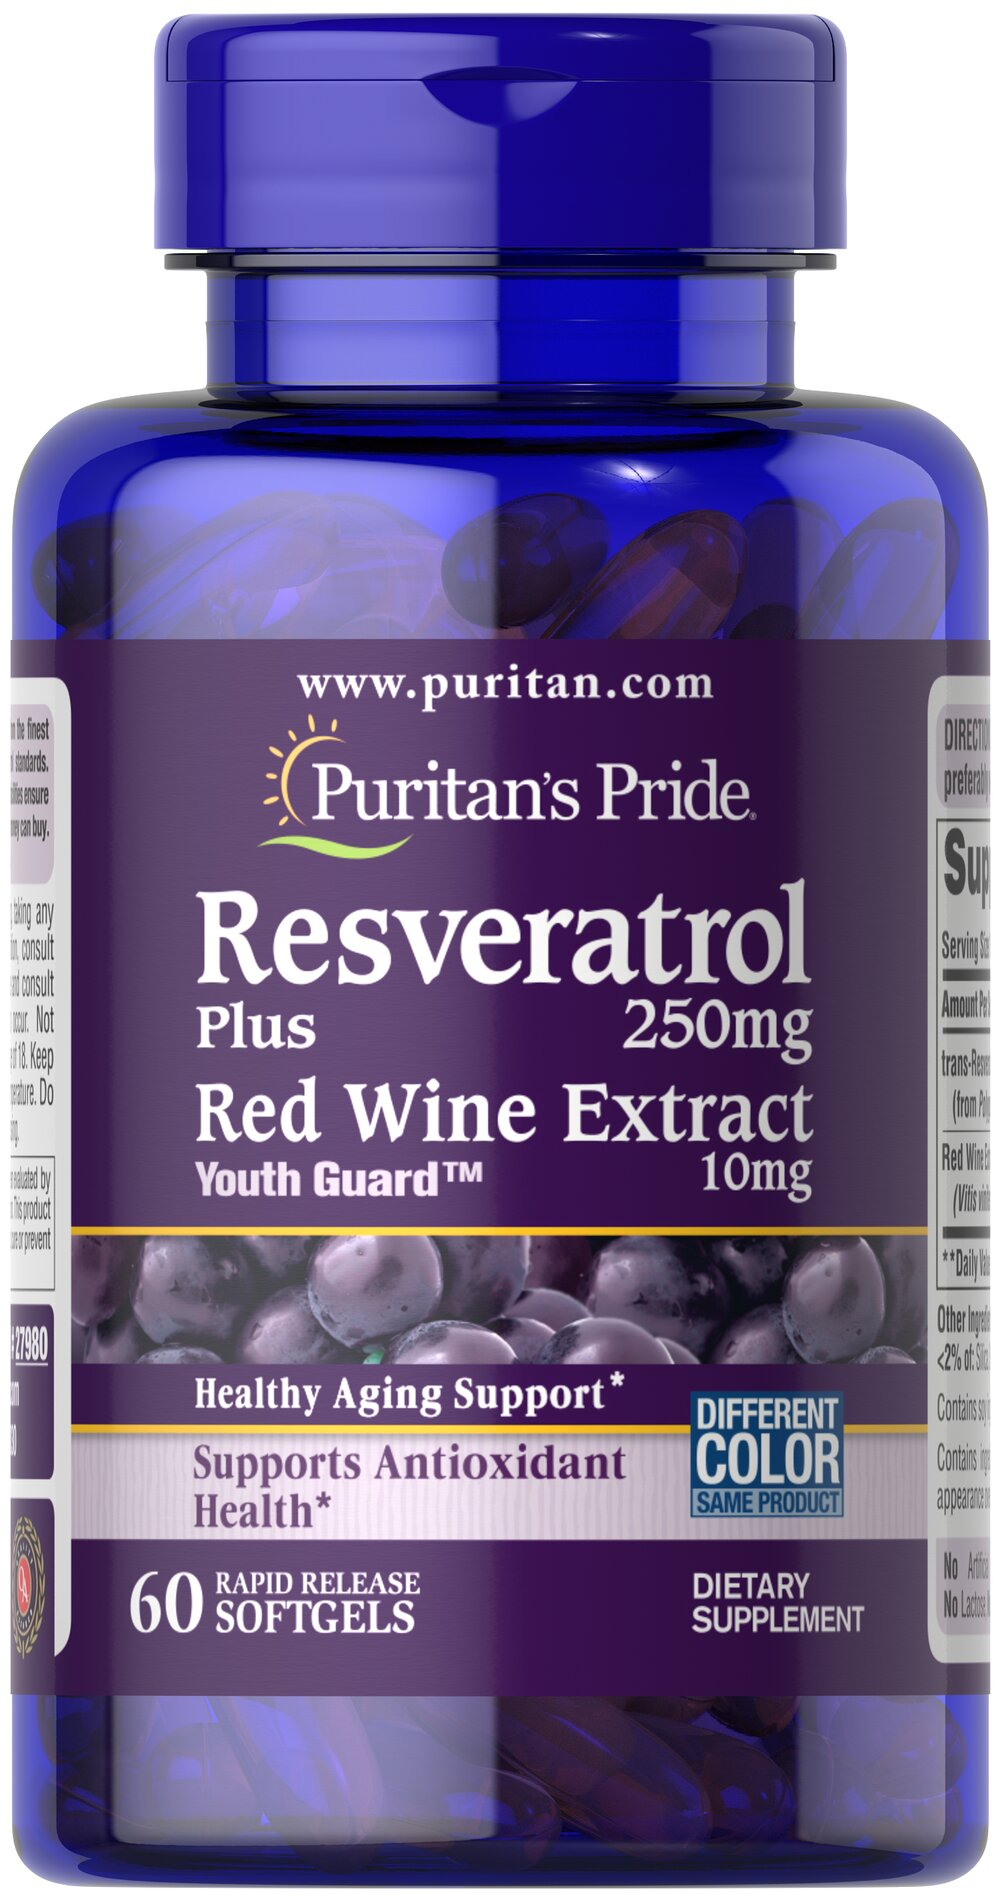 Resveratrol 250 mg <p>Resveratrol is the beneficial nutrient found in red wine</p><p>You'll get more Resveratrol in one of our capsules than you would from an entire bottle of red wine!</p><p>Maximum strength capsules are formulated for rapid  release into your system</p><p>Provides powerful antioxidant support**</p><p>Helps fight against cell-damaging free radicals**</p> 60 Softgels 250 mg $48.39